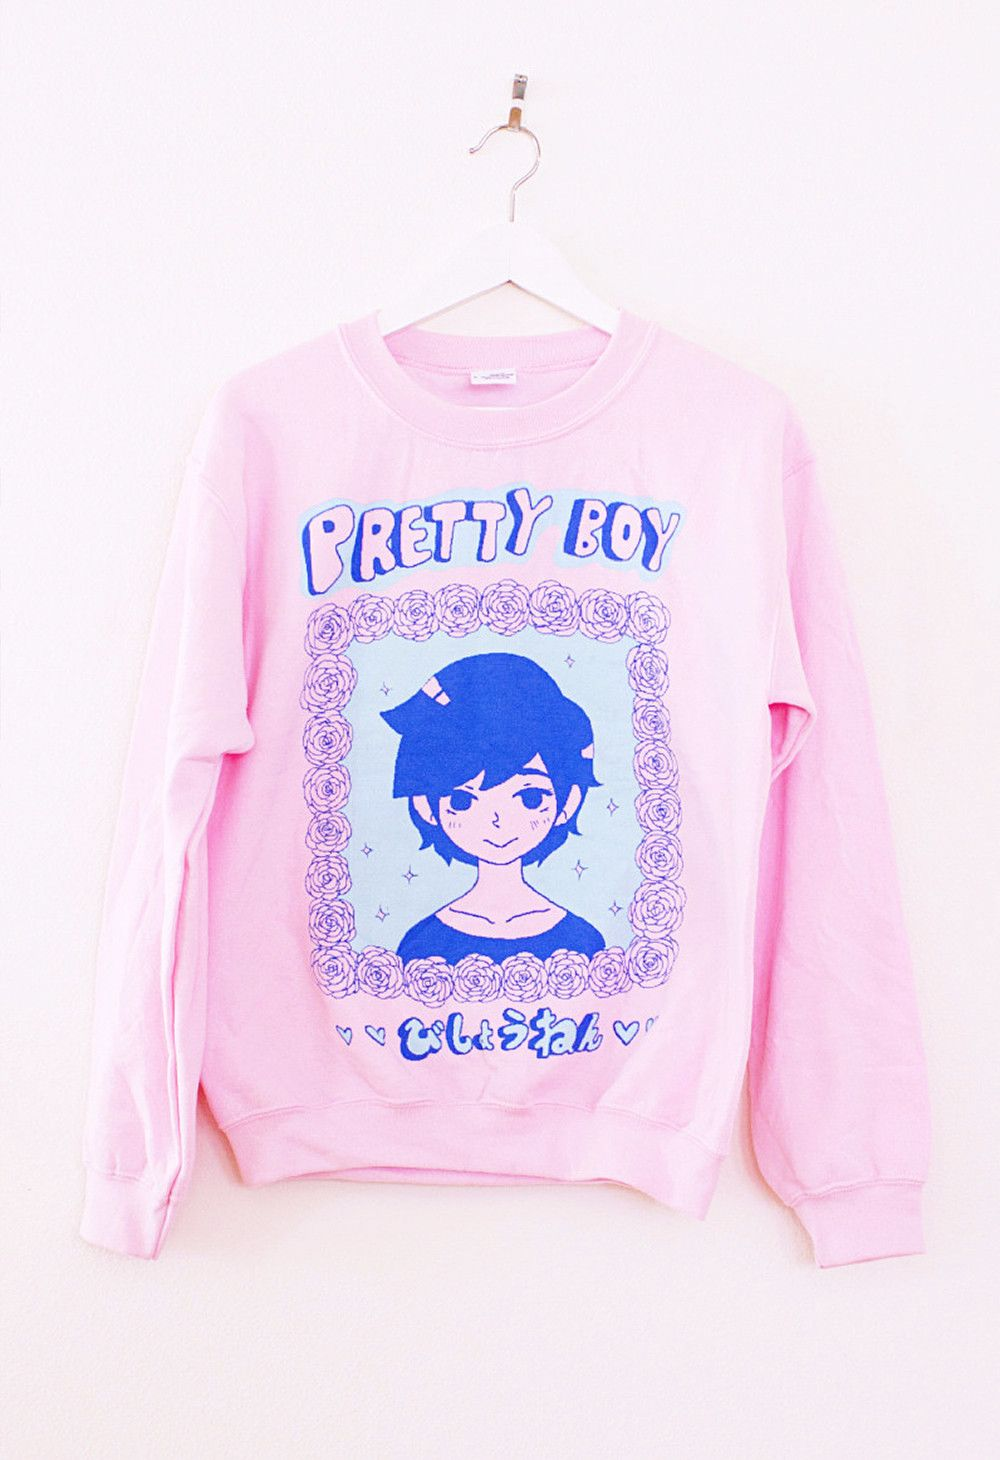 PRETTYBOY Pink Sweater | Clothes, Grunge punk fashion and Kawaii ...